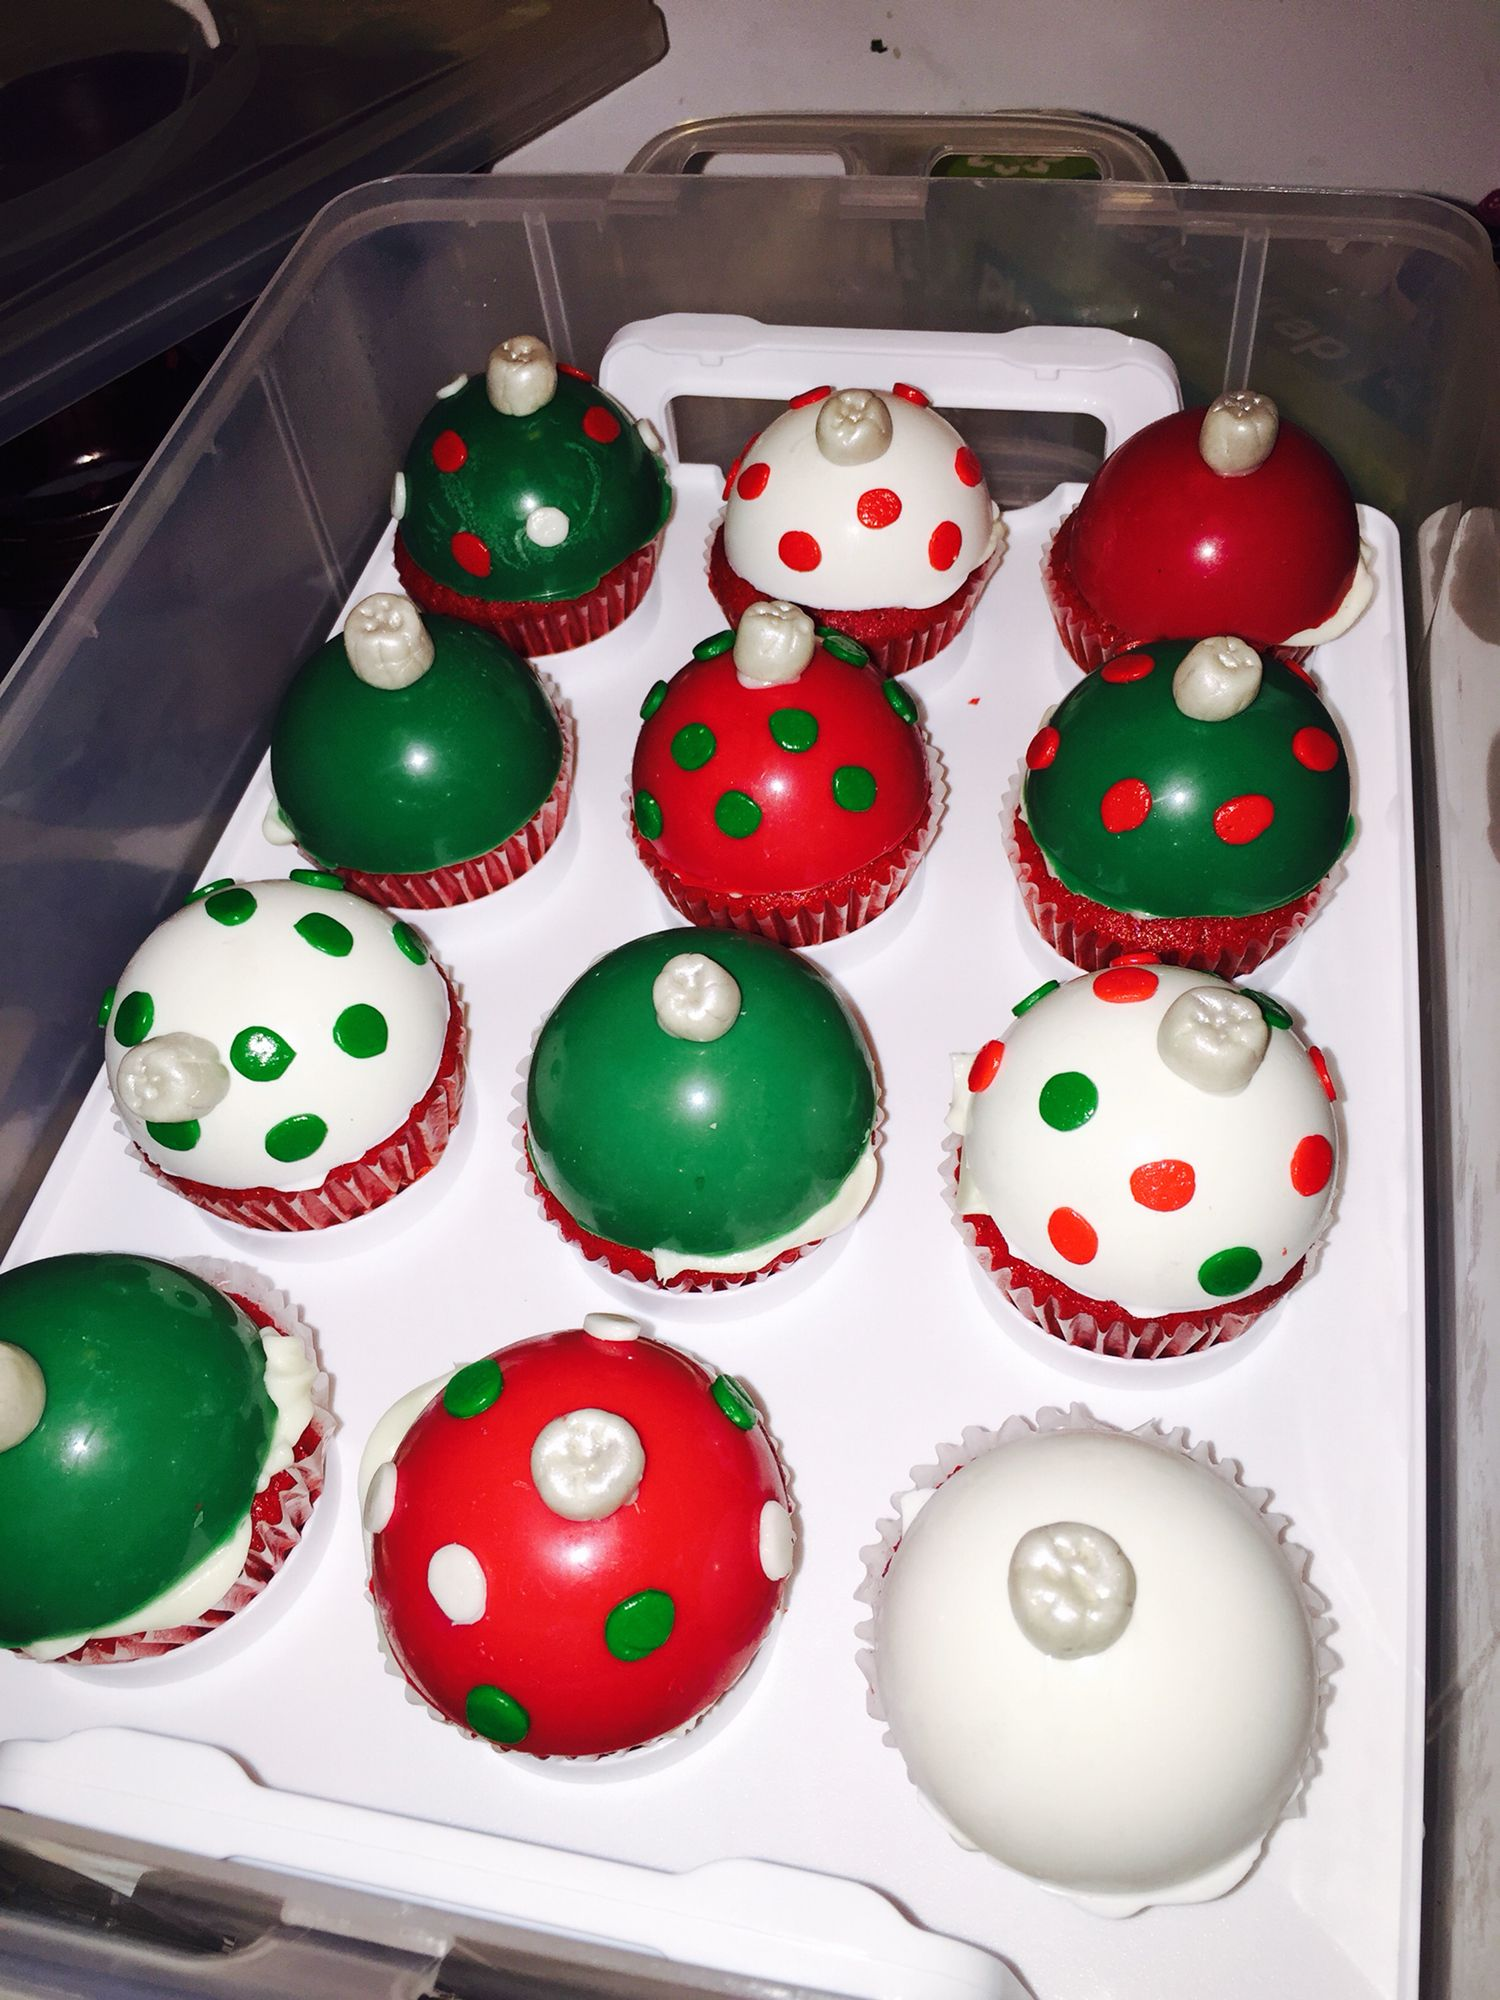 Christmas Ornament cupcakes from Cocalicious Cupcakes